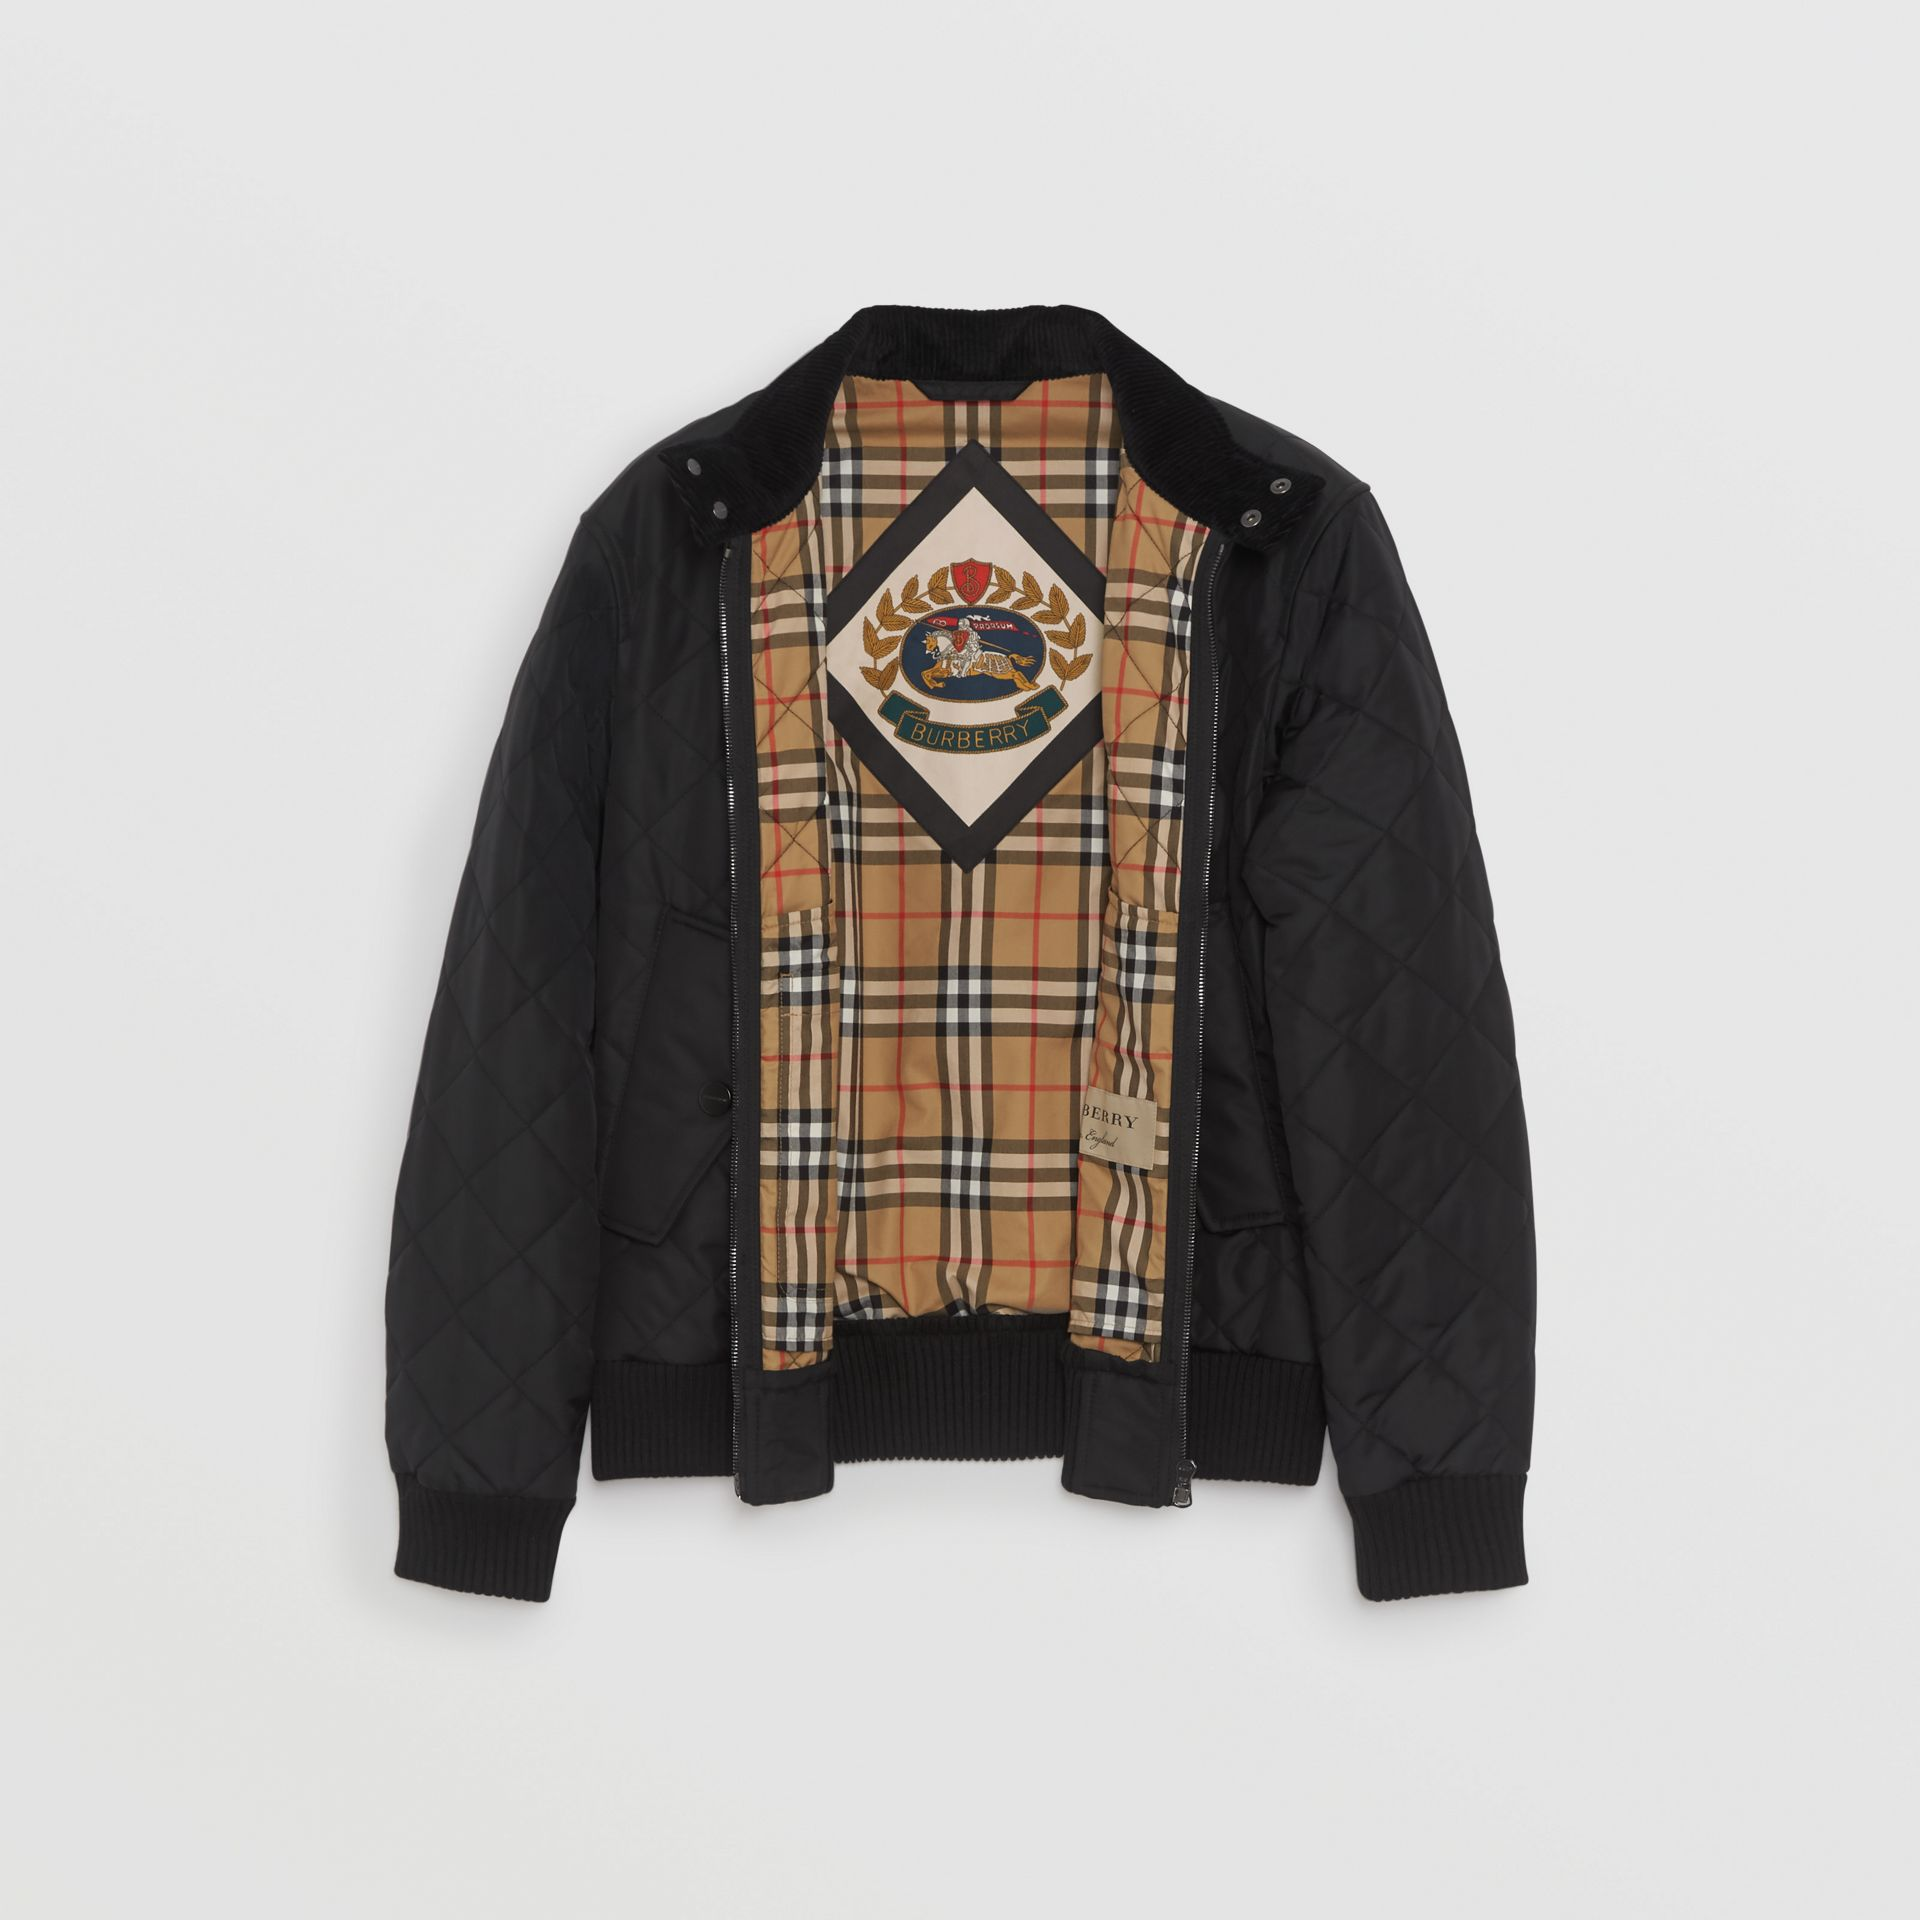 Veste Harrington thermorégulée matelassée (Noir) - Homme | Burberry - photo de la galerie 3